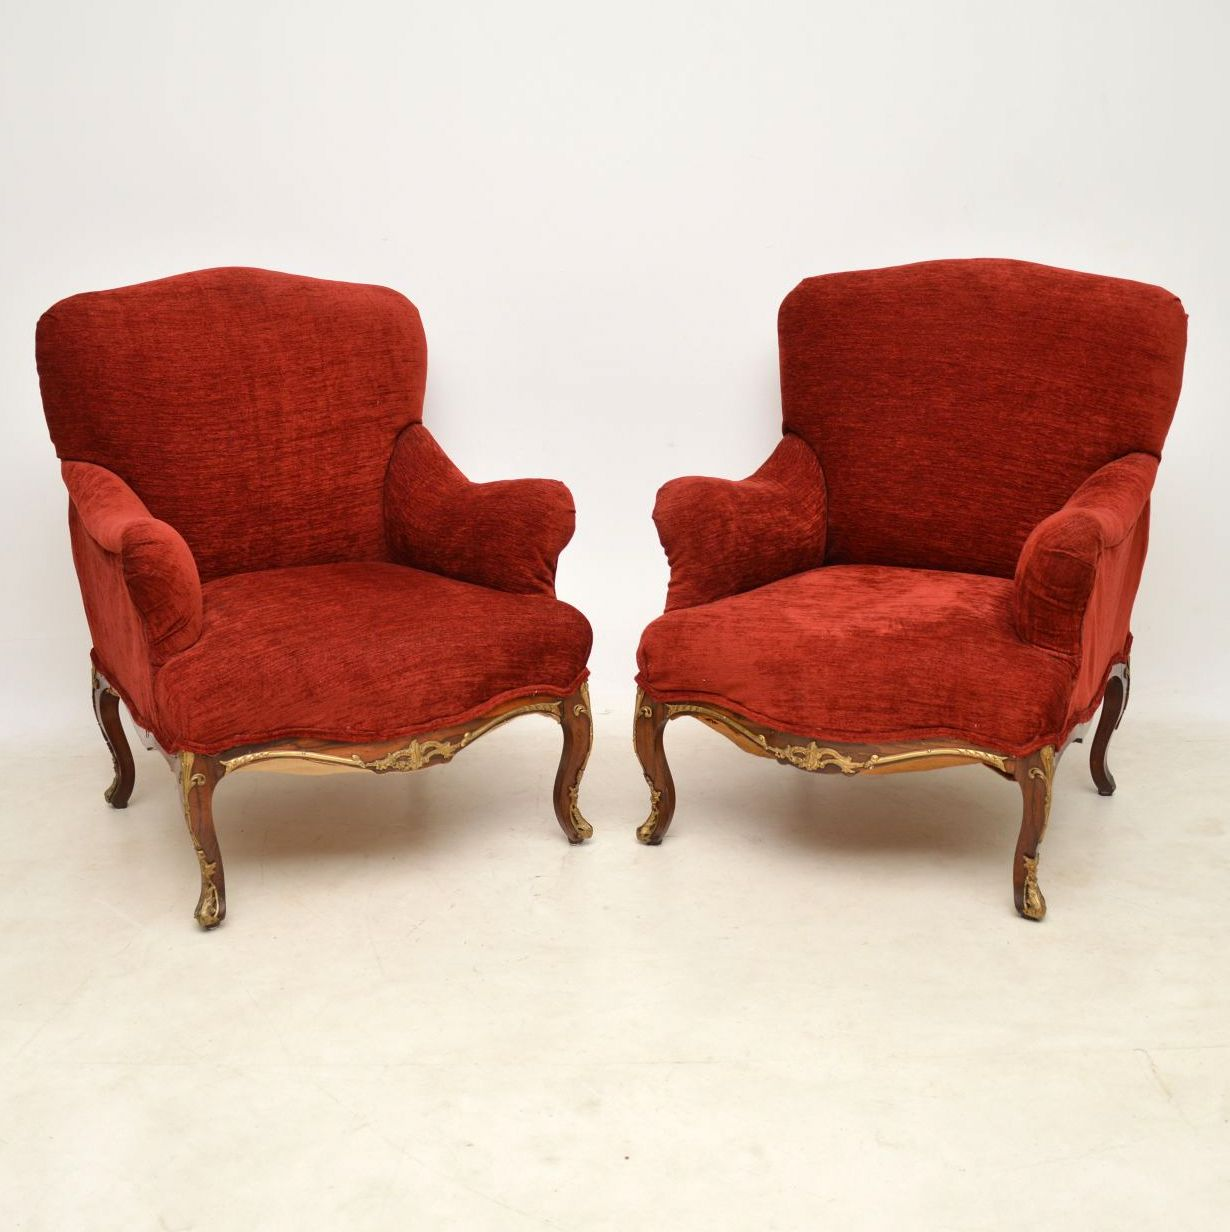 Pair of Antique Rosewood Upholstered Armchairs | Interior ...